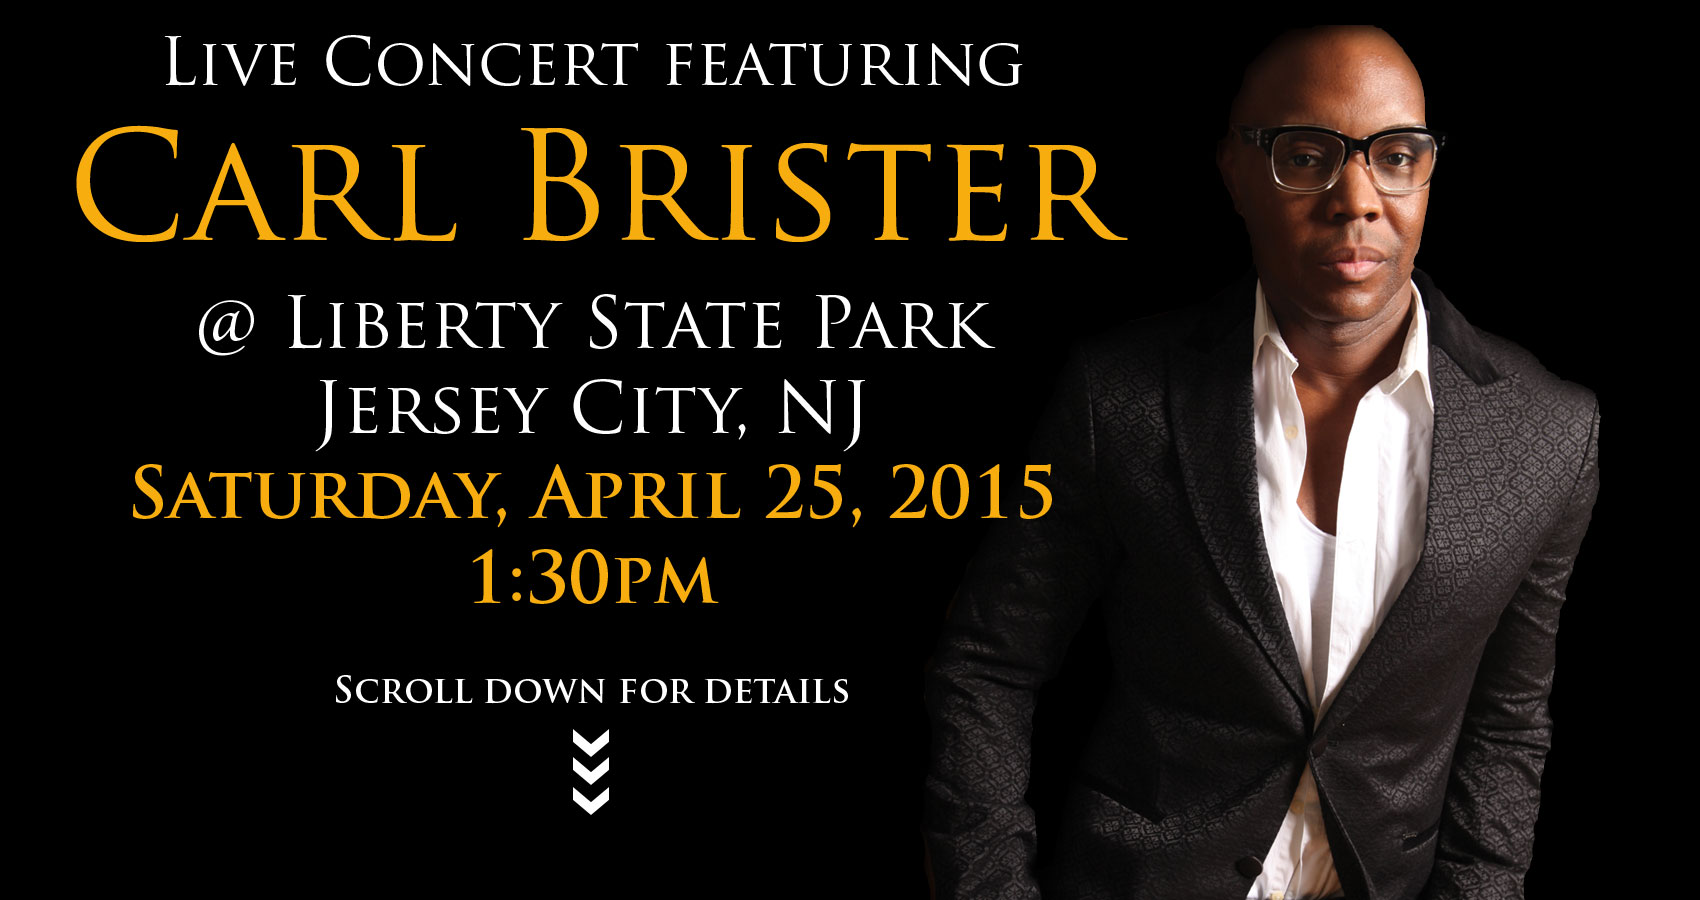 Live Concert Featuring CARL BRISTER at Liberty State Park - Saturday, April 25, 2015 at 1:30pm